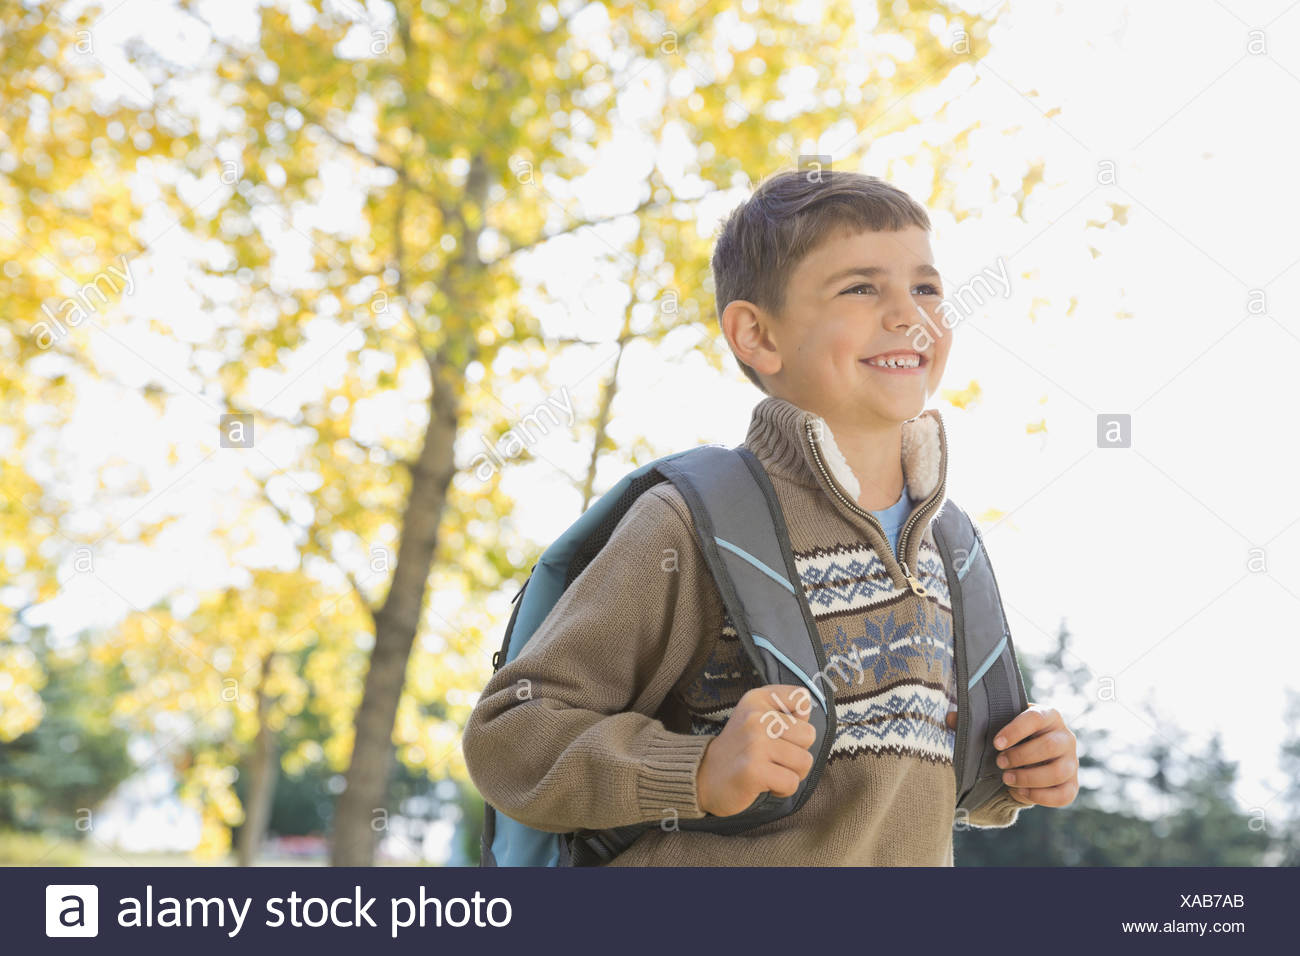 Schoolboy with backpack standing outdoors - Stock Image